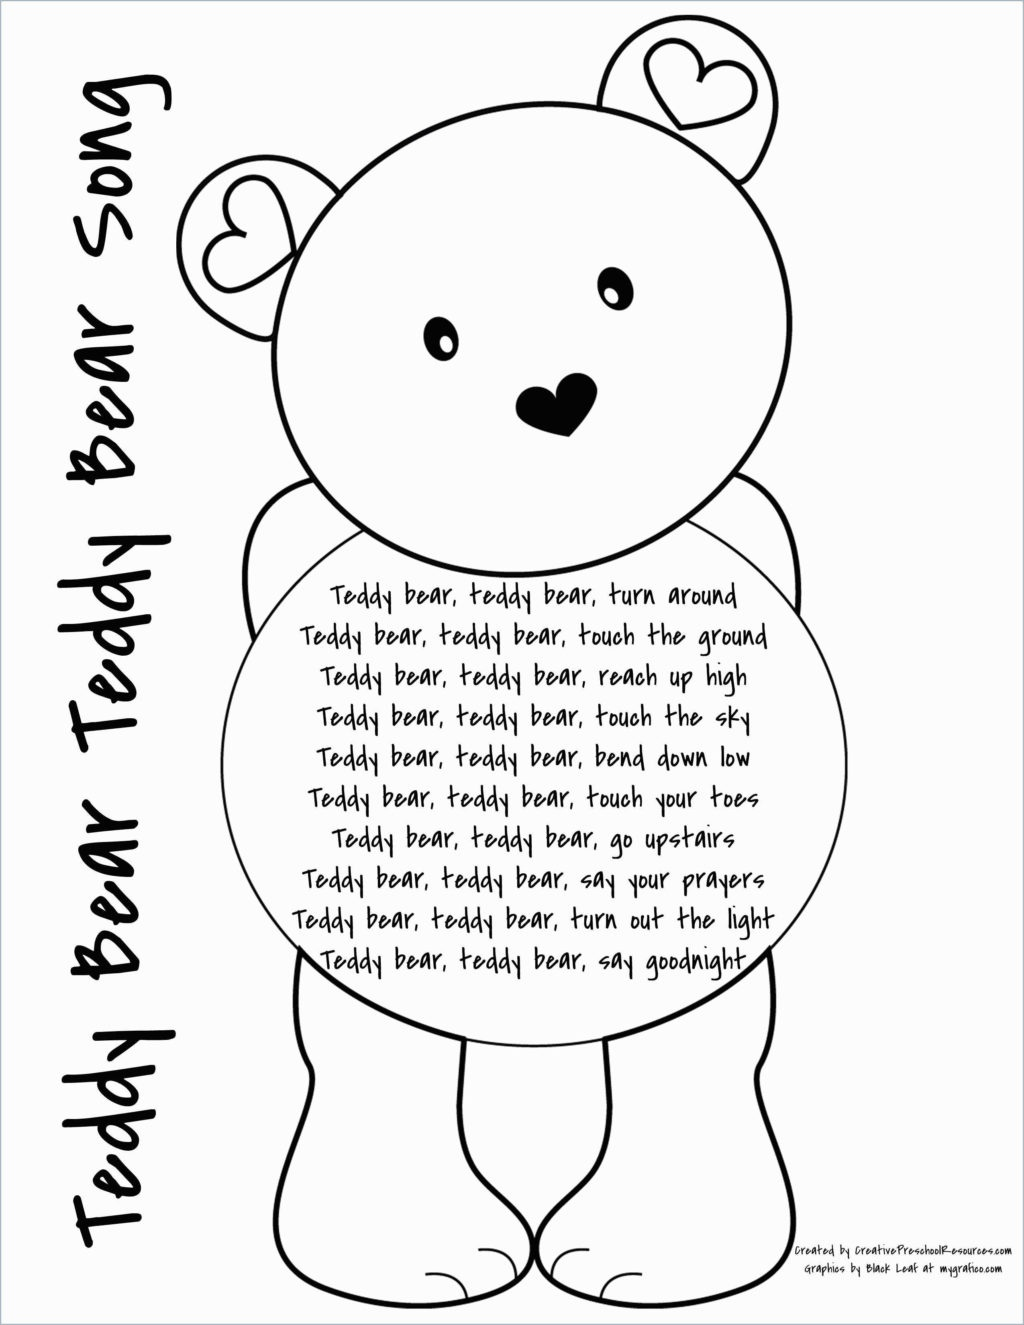 Coloring Book World ~ Teddy Bear Coloring Pages Book World For Kids - Free Printable Good Touch Bad Touch Coloring Book